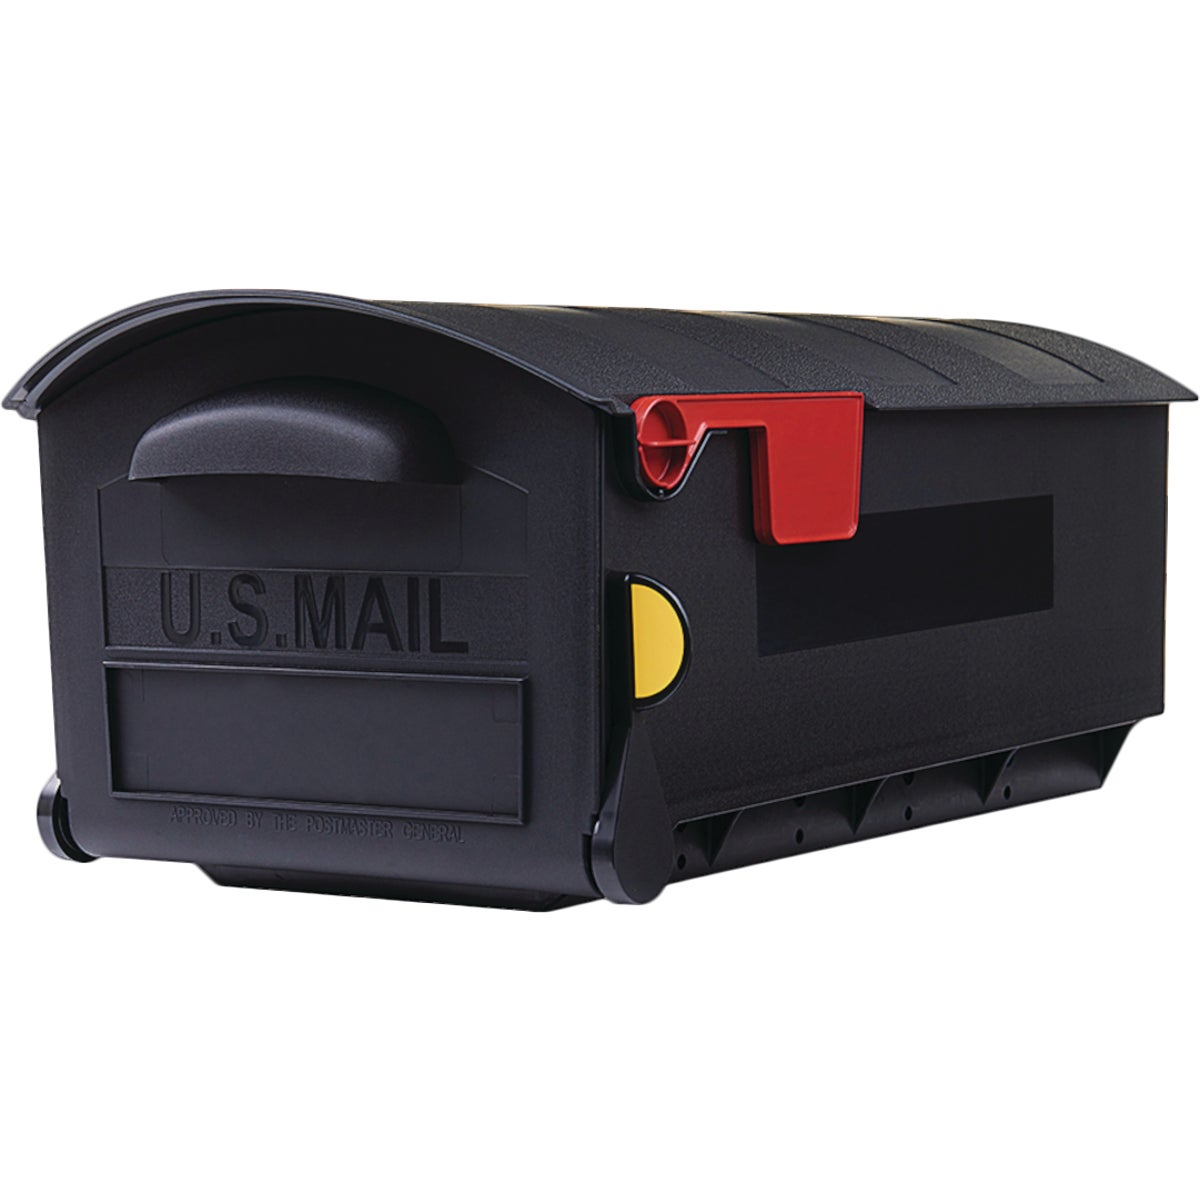 BLK C2 RUBBERMAID MAILBX